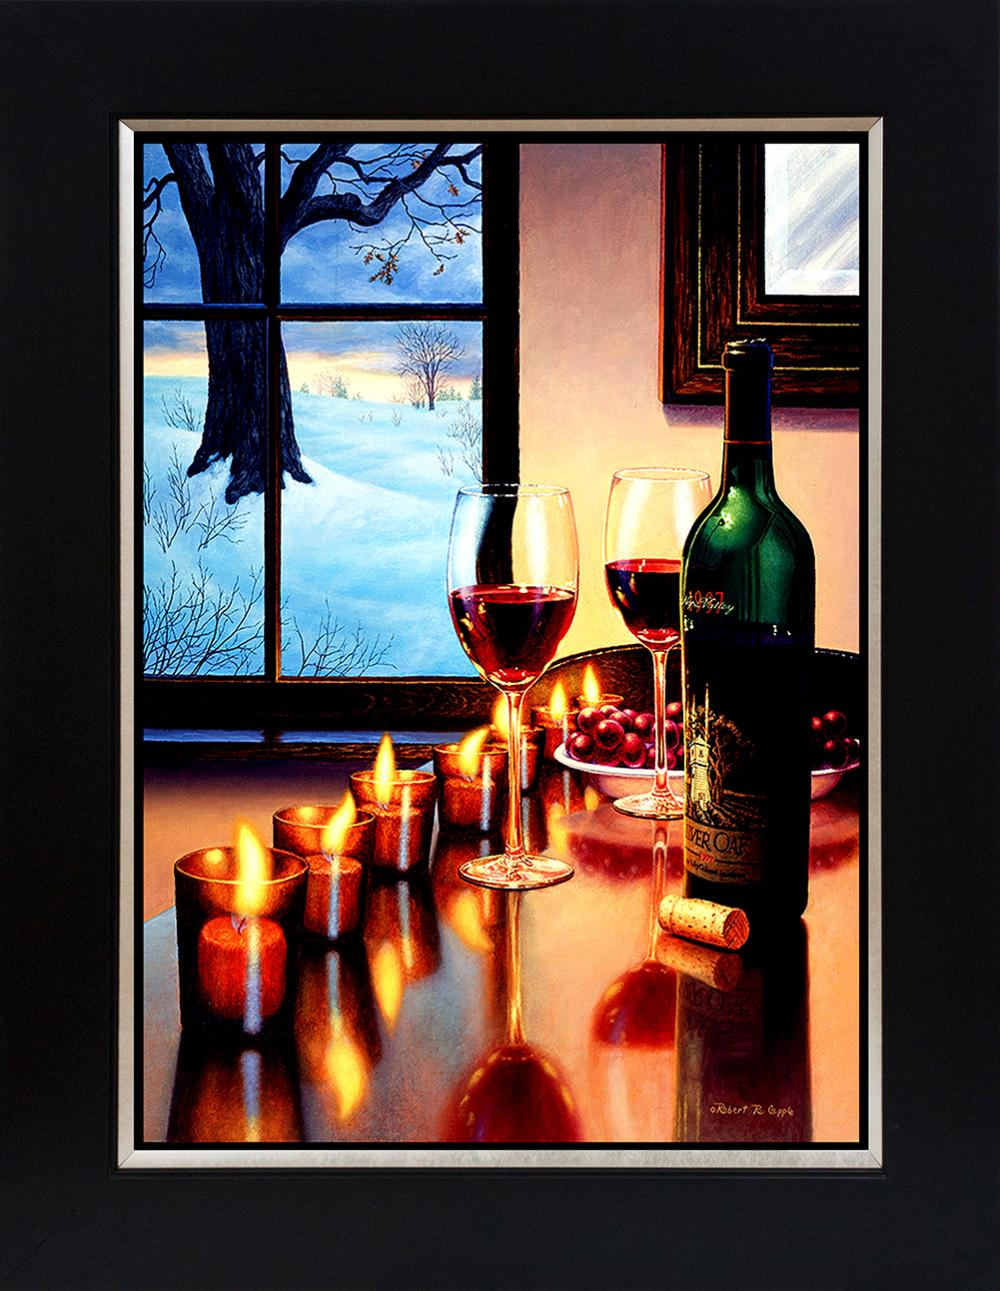 Robert Copple Wine Series Hand embellished Limited edition on canvas